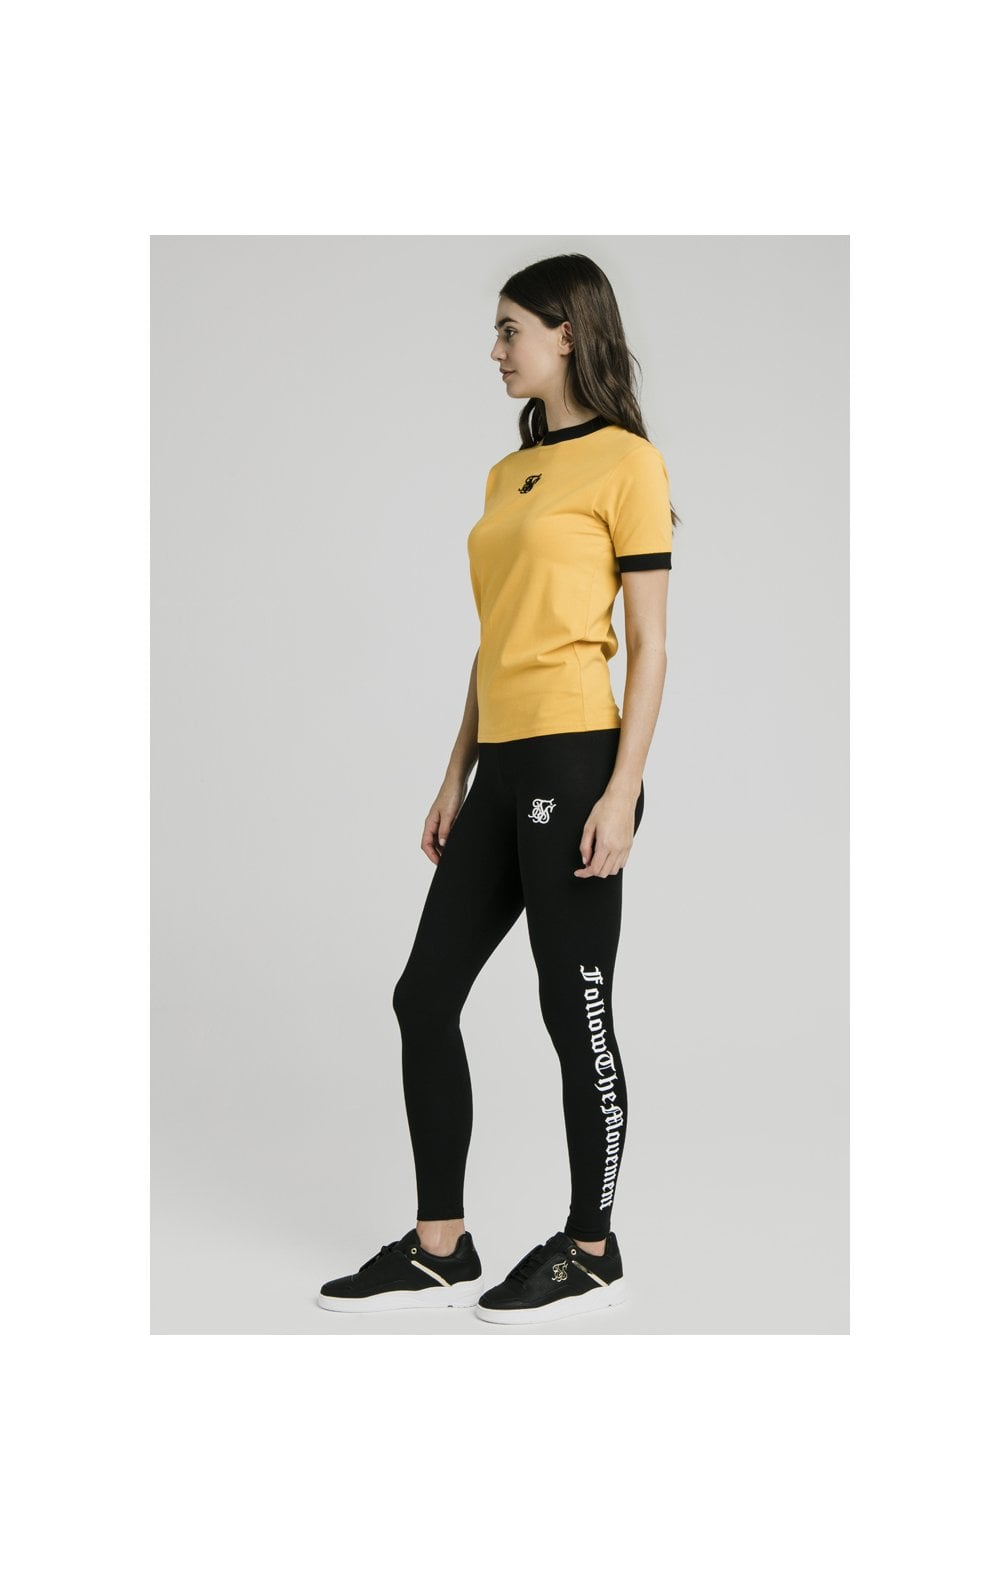 "SikSilk Legging avec Texte ""Follow the Movement"" - Noir (3)"